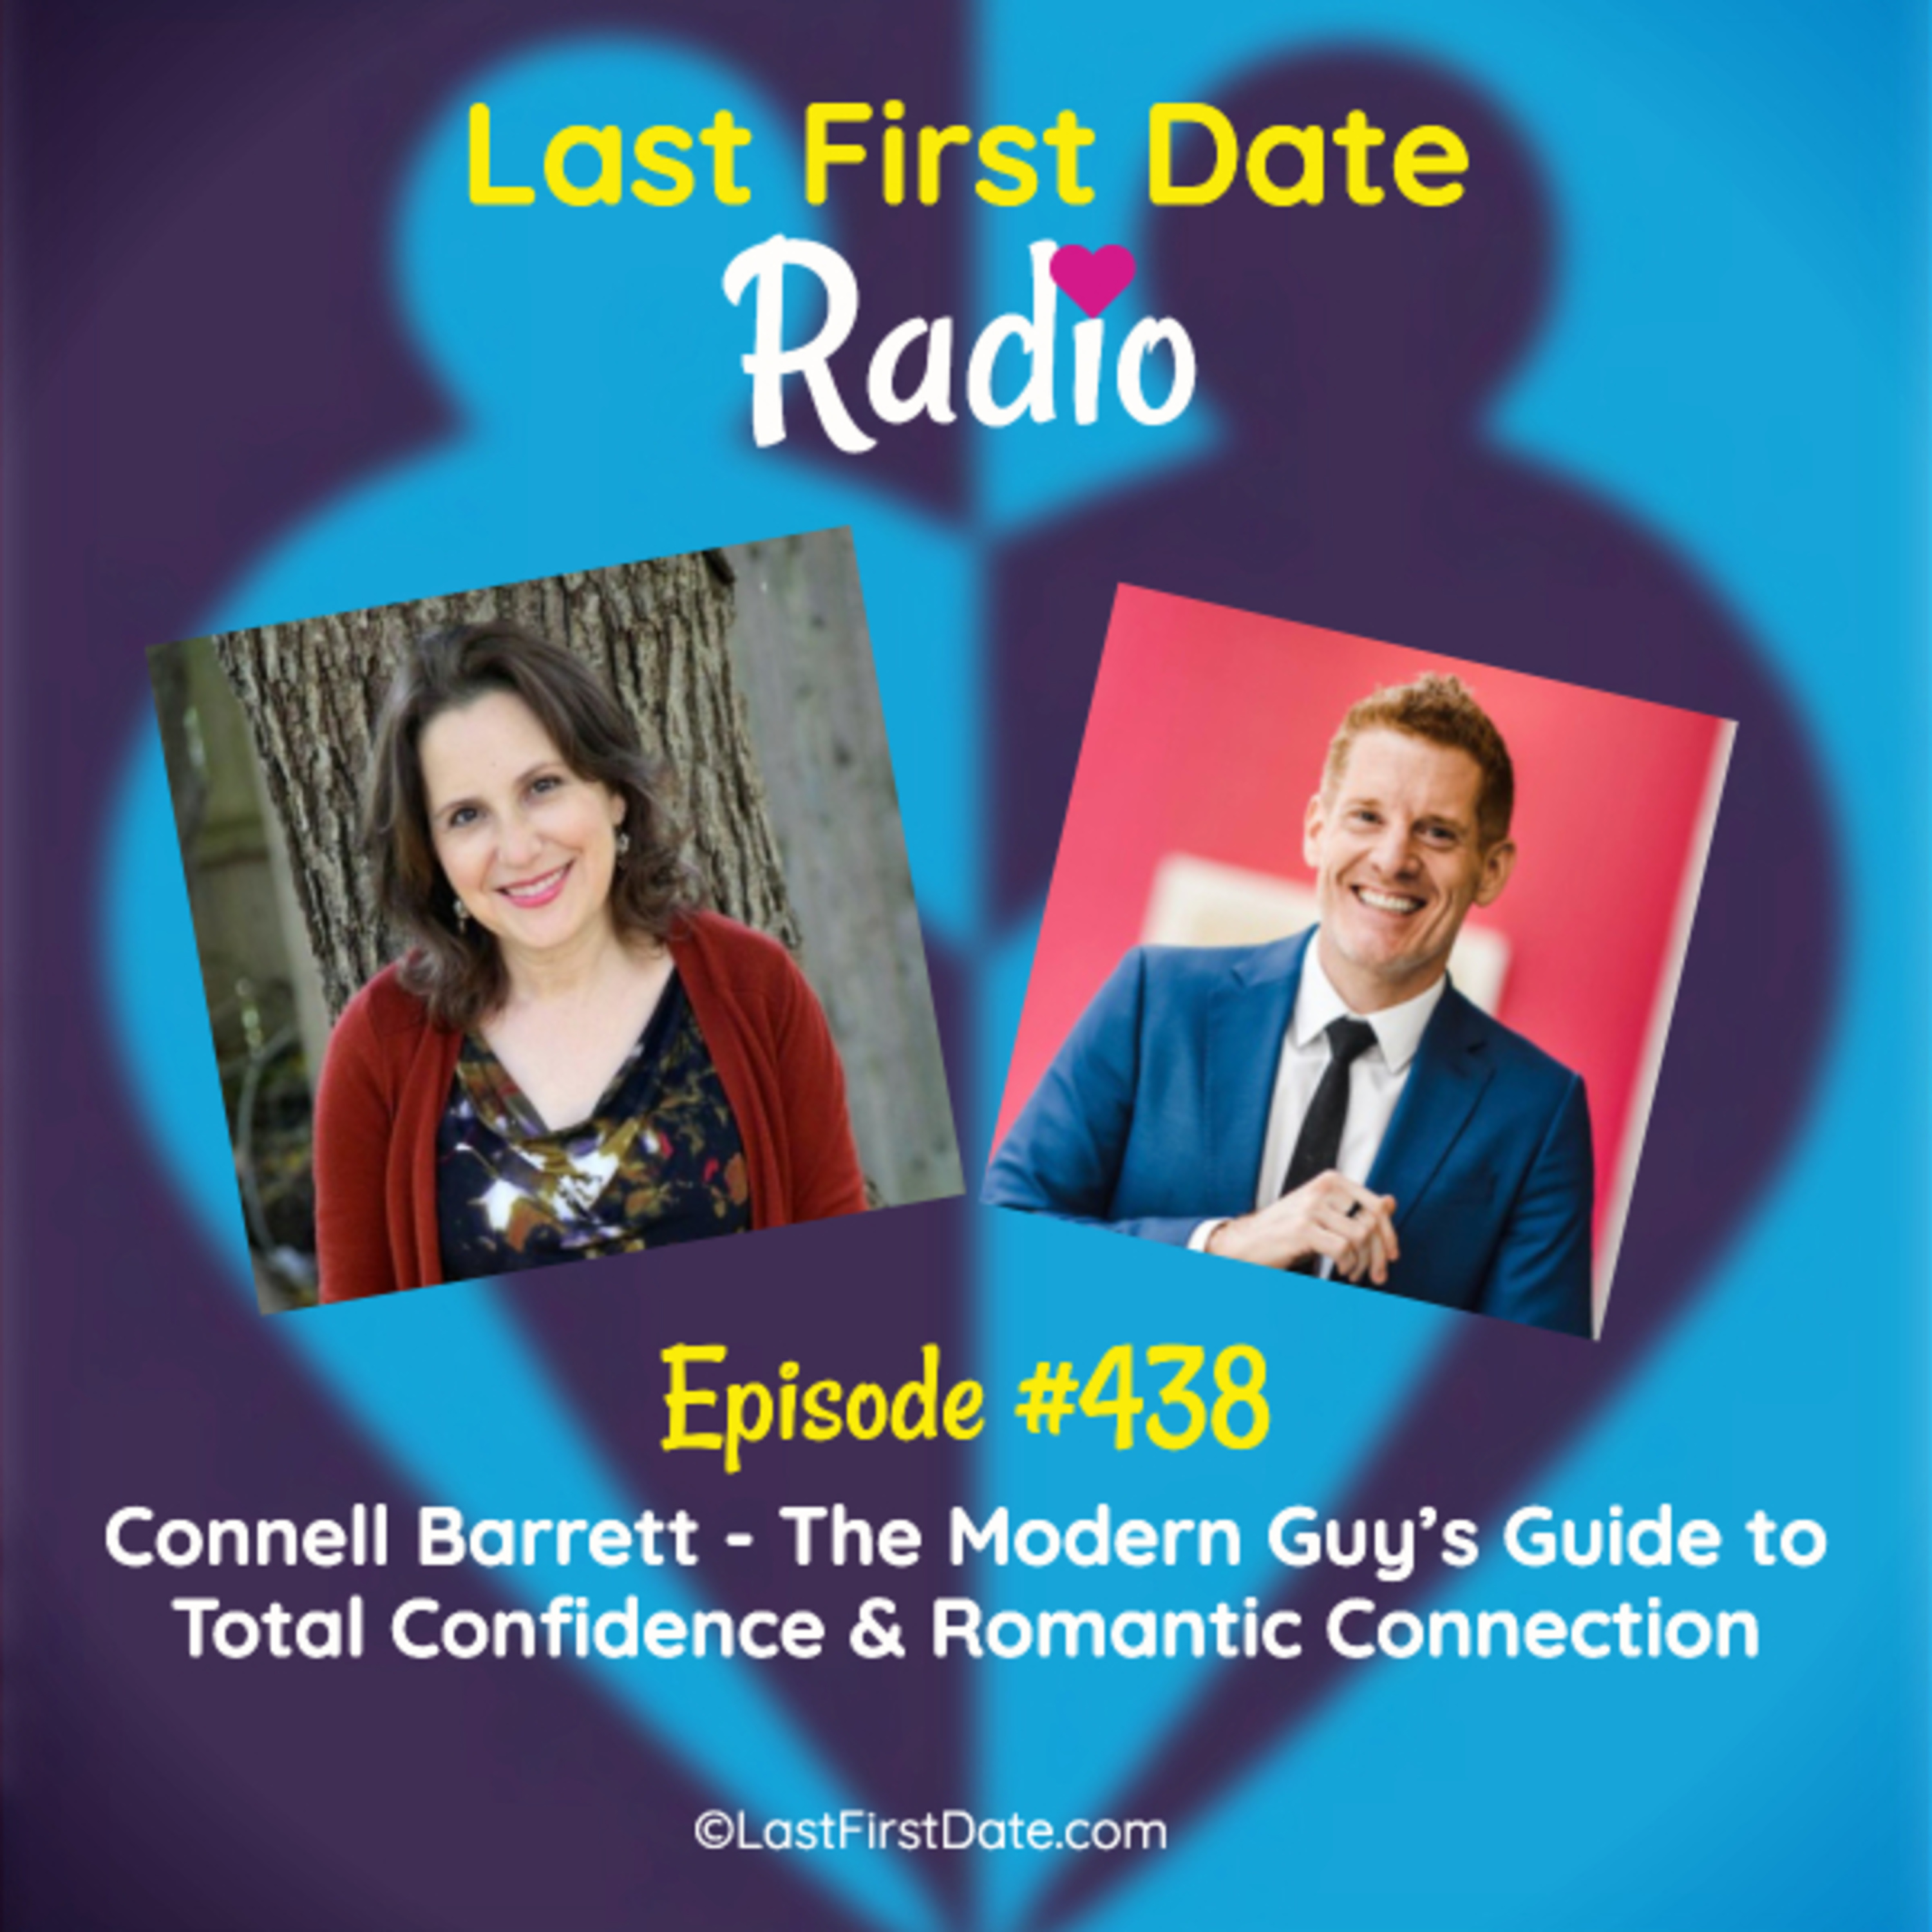 Last First Date Radio - EP 438: Connell Barrett - The Modern Guy's Guide to Total Confidence & Romantic Connection